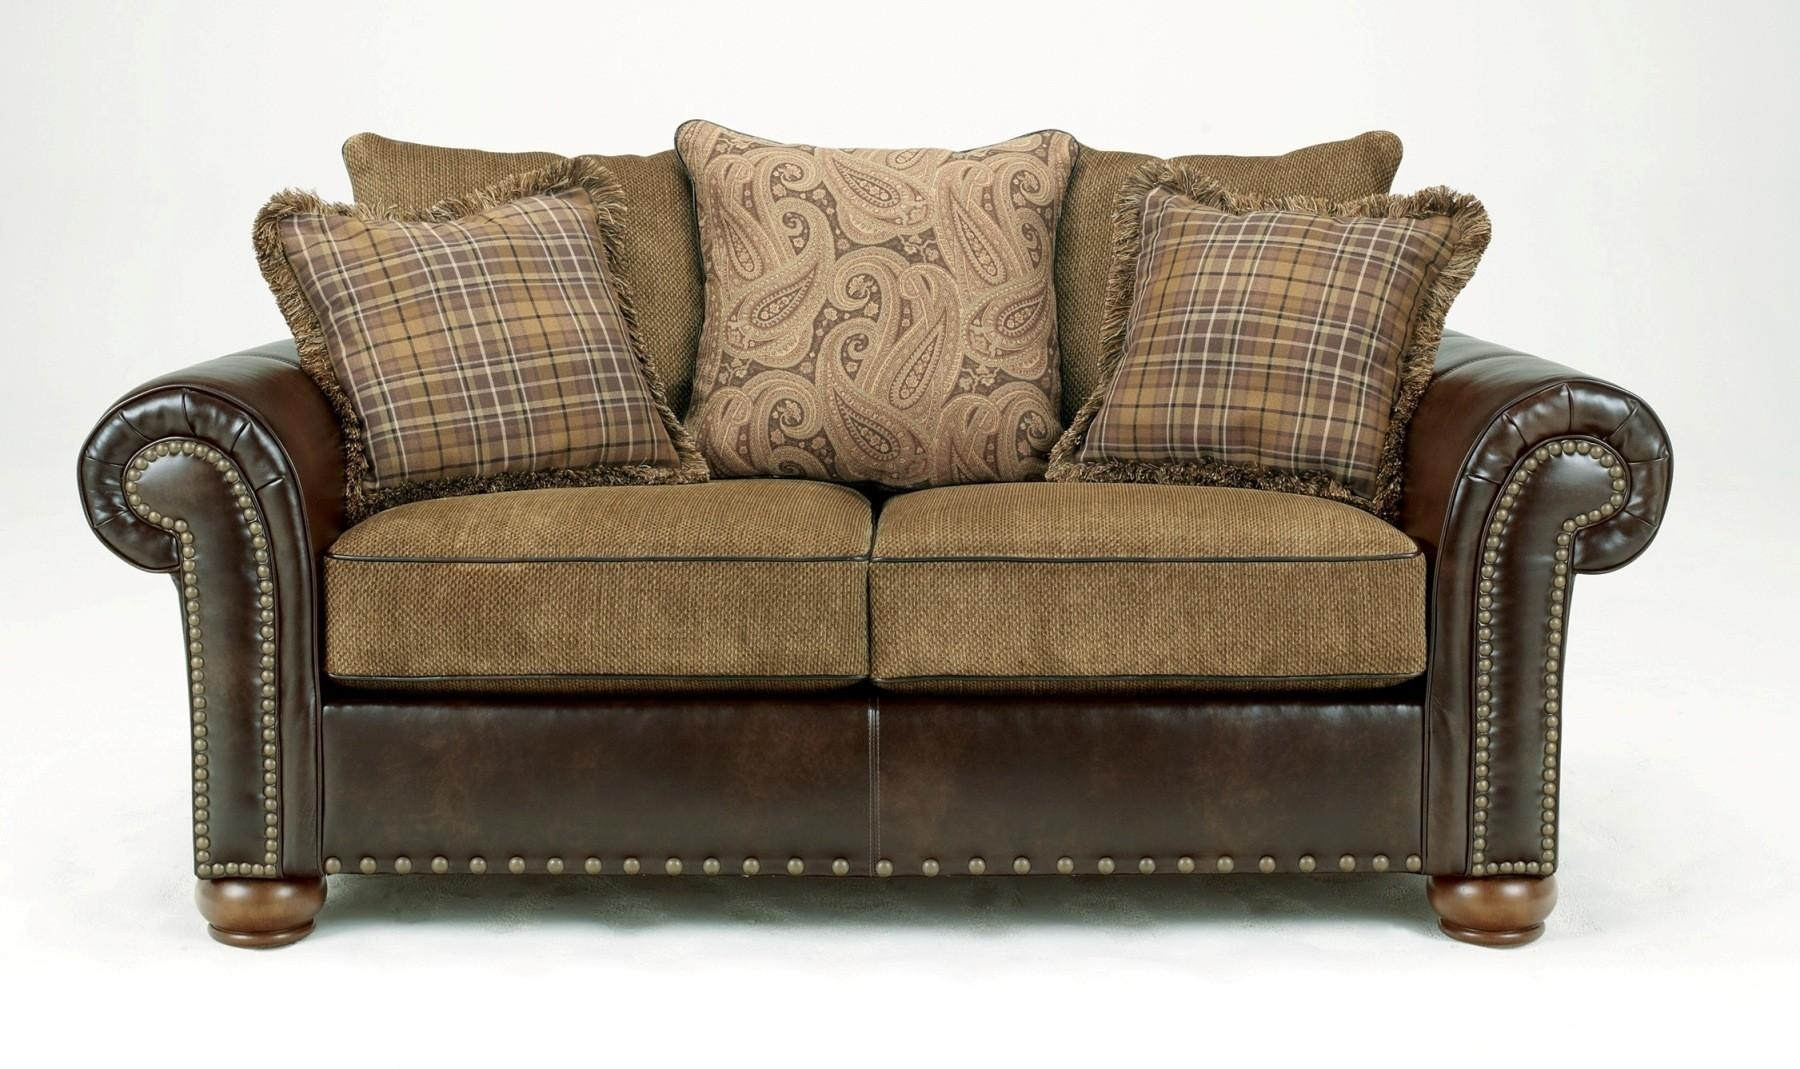 Bradington Truffle Sofa | Sofa Gallery | Kengire Within Bradington Truffle (Image 12 of 20)